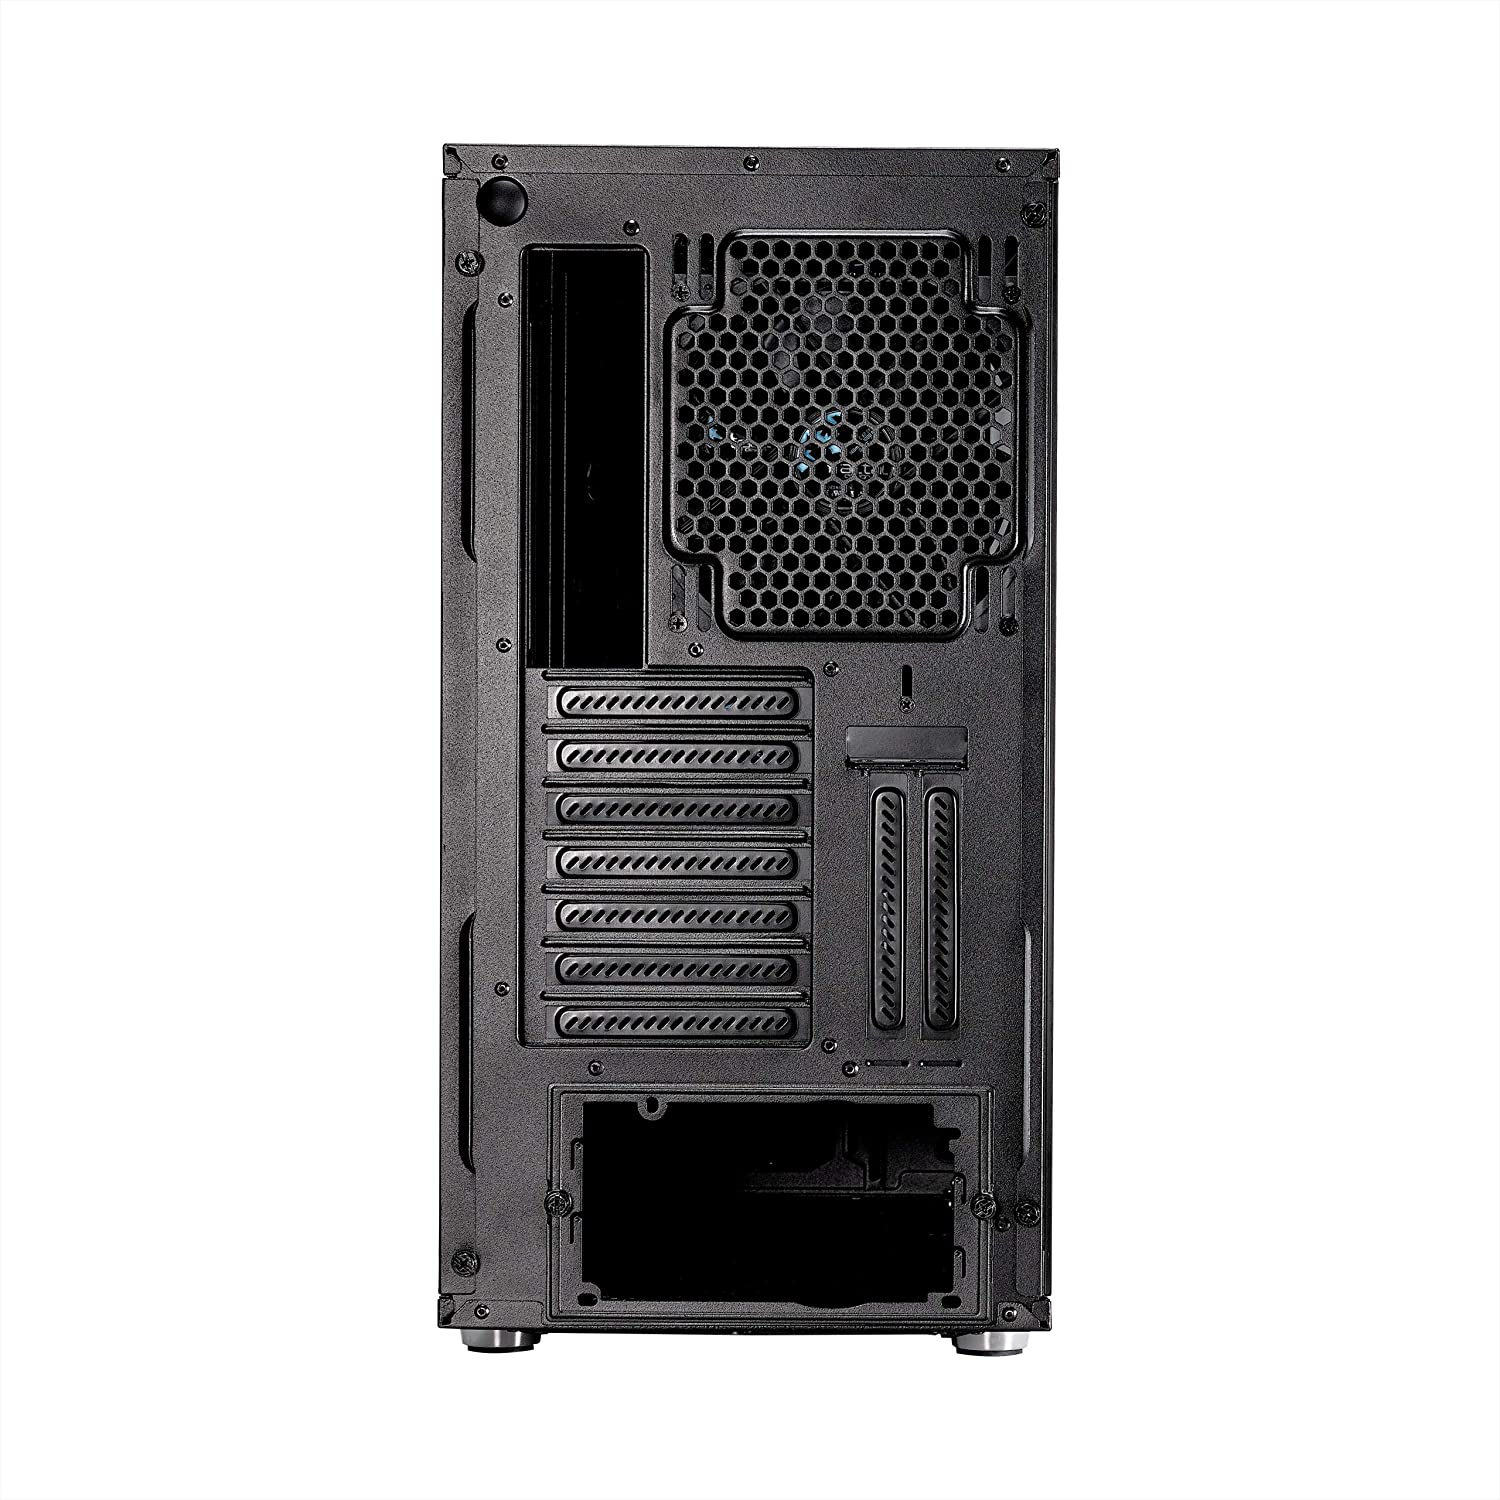 Water-Cooling Ready Mid Tower Computer Case Airflow//Performance USB Type C 3X Silent Fans and Nexus Hub Modular Interior Fractal Design Meshify S2 PSU Shroud Blackout Tempered Glass